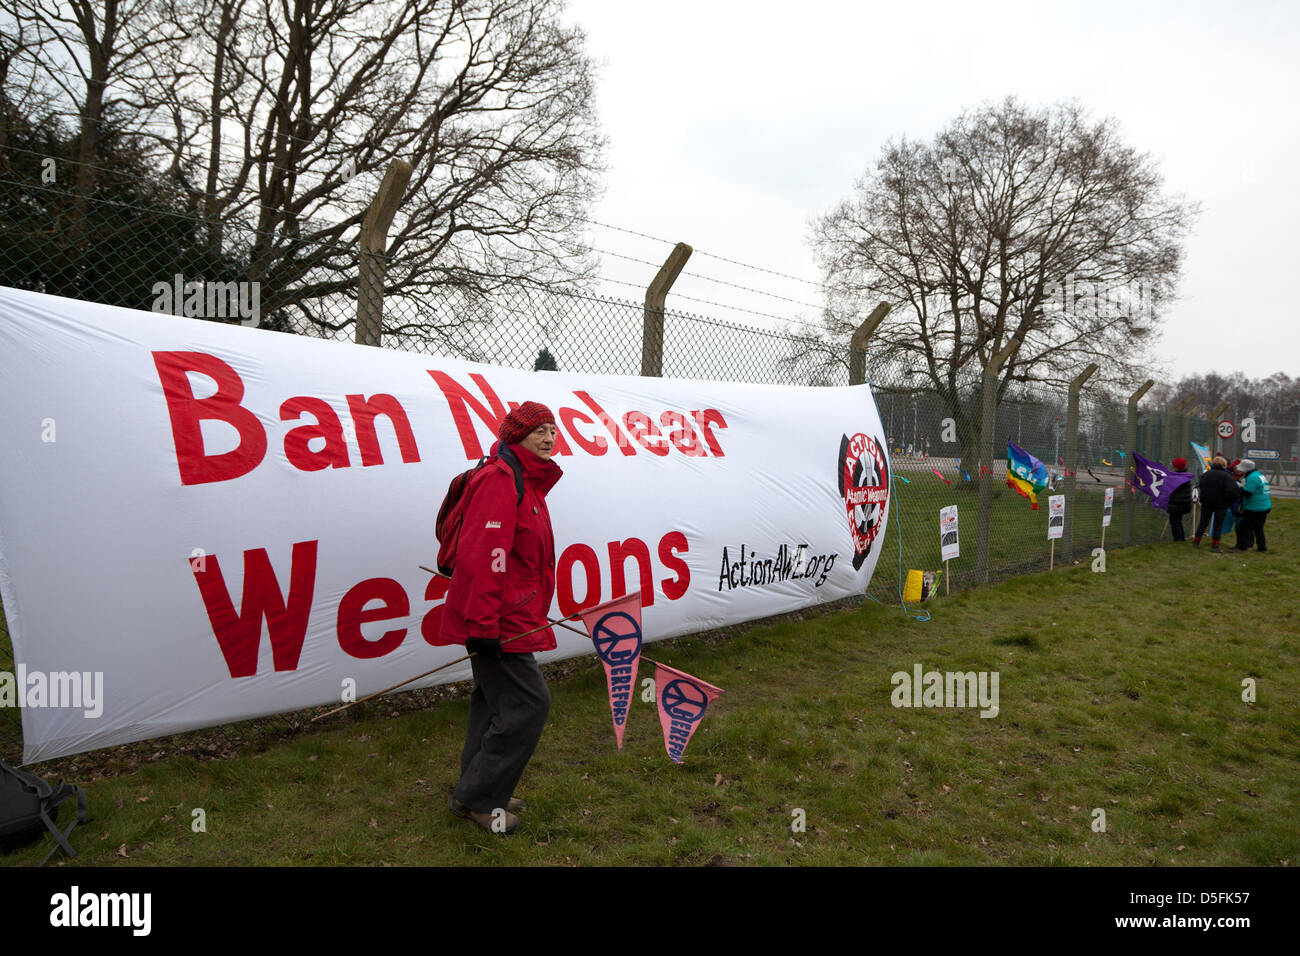 Aldermaston, Berkshire, UK. 1st April 2013.  Banners and posters were put up along the fence of the Atomic Weapons - Stock Image